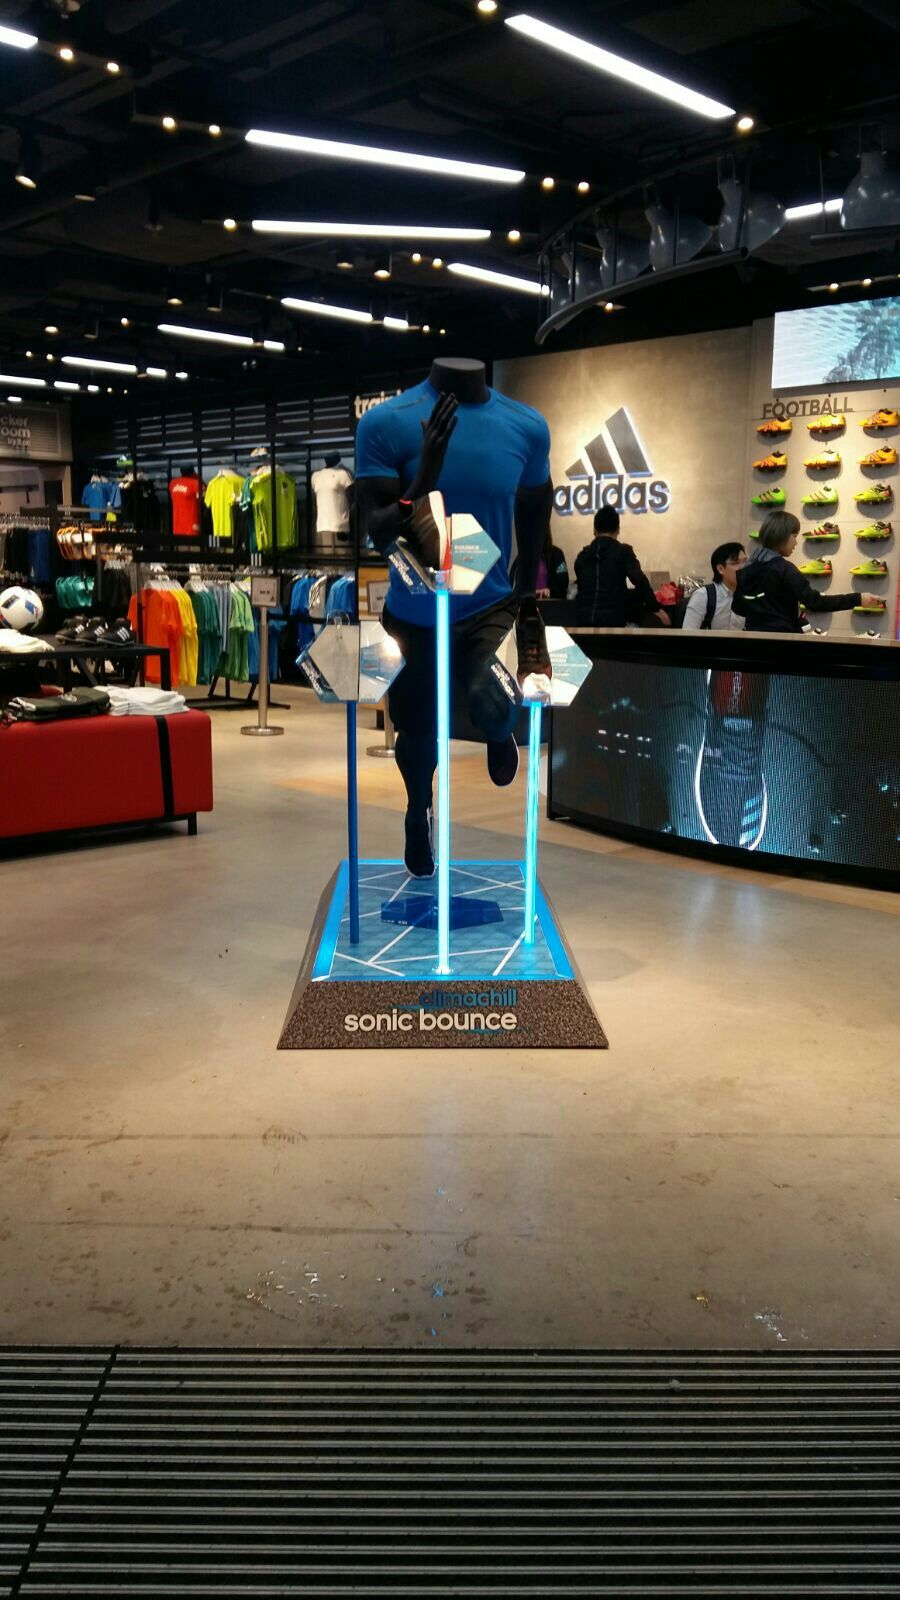 Adidas CC Sonics Bounce May16 HK Store design boutique